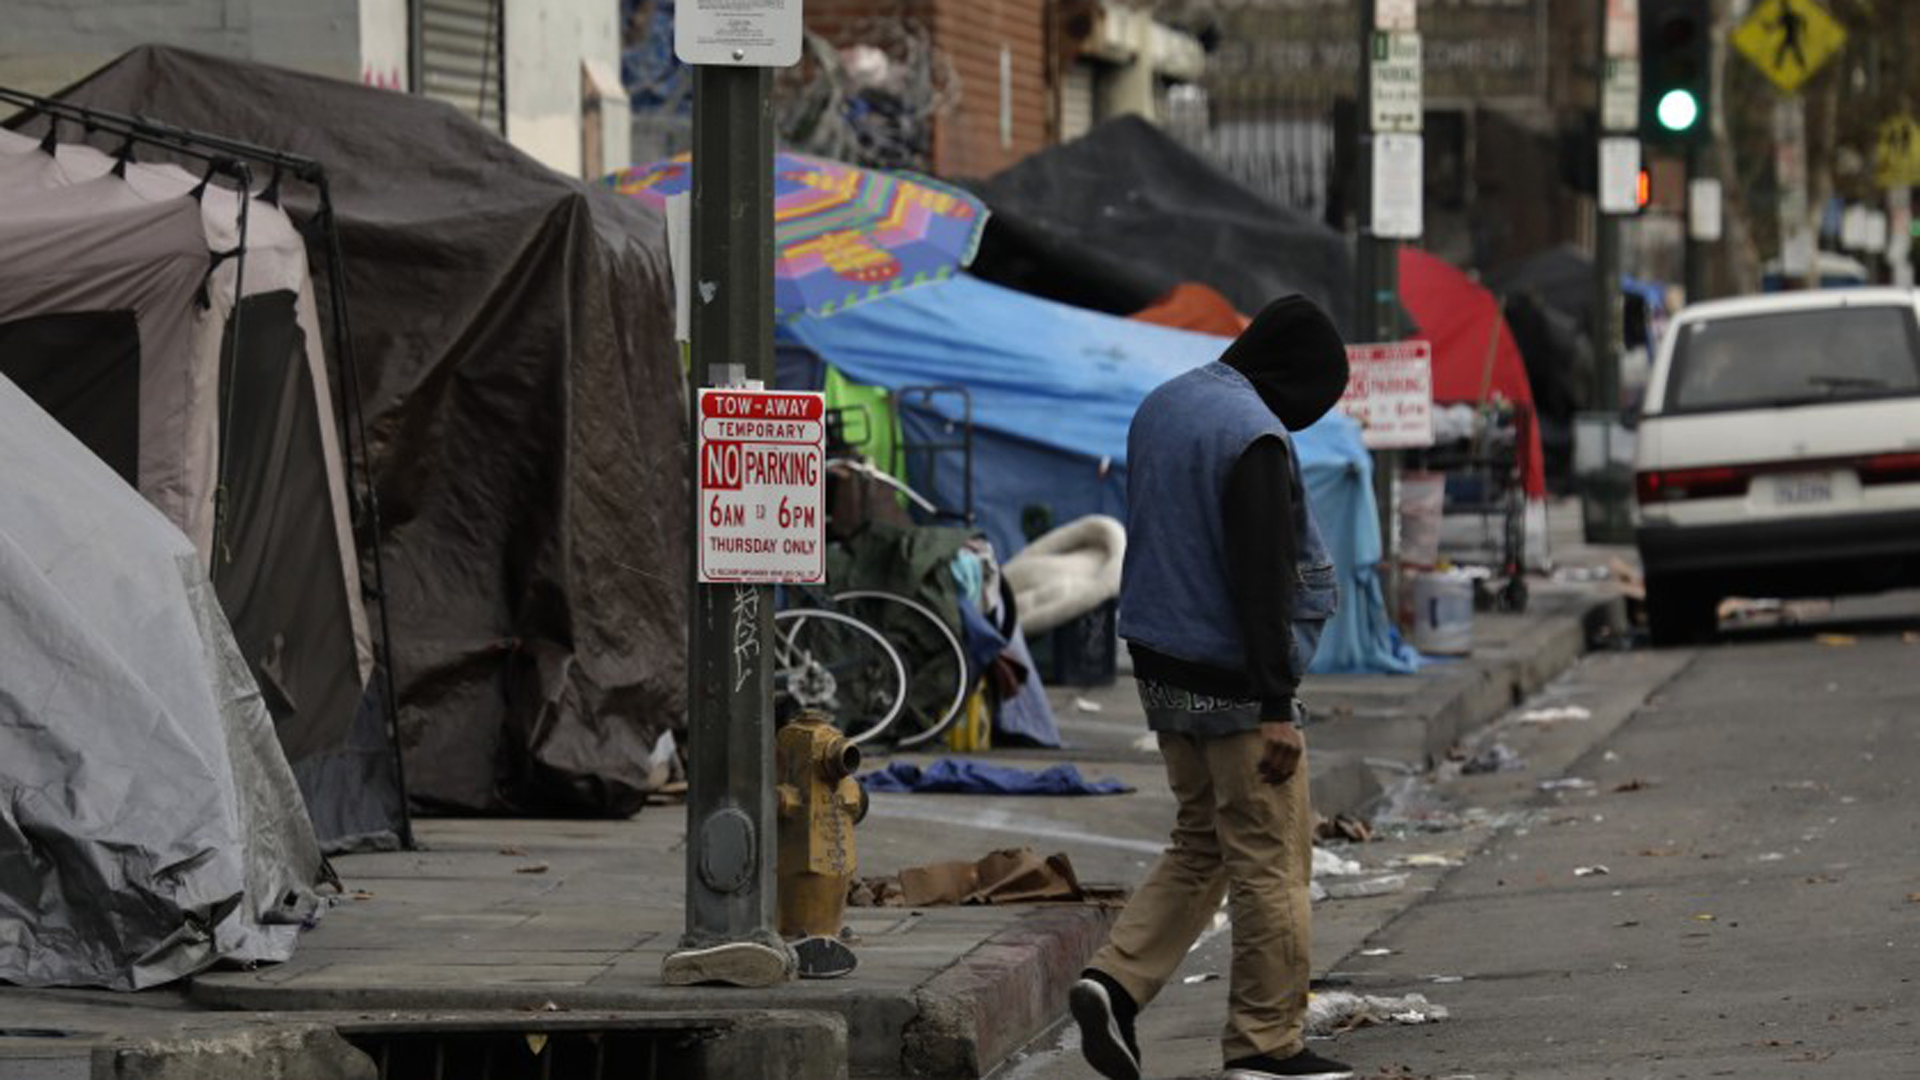 A man walks down 6th Street, weaving his way around tents, in Los Angeles.(Credit: Carolyn Cole/Los Angeles Times)